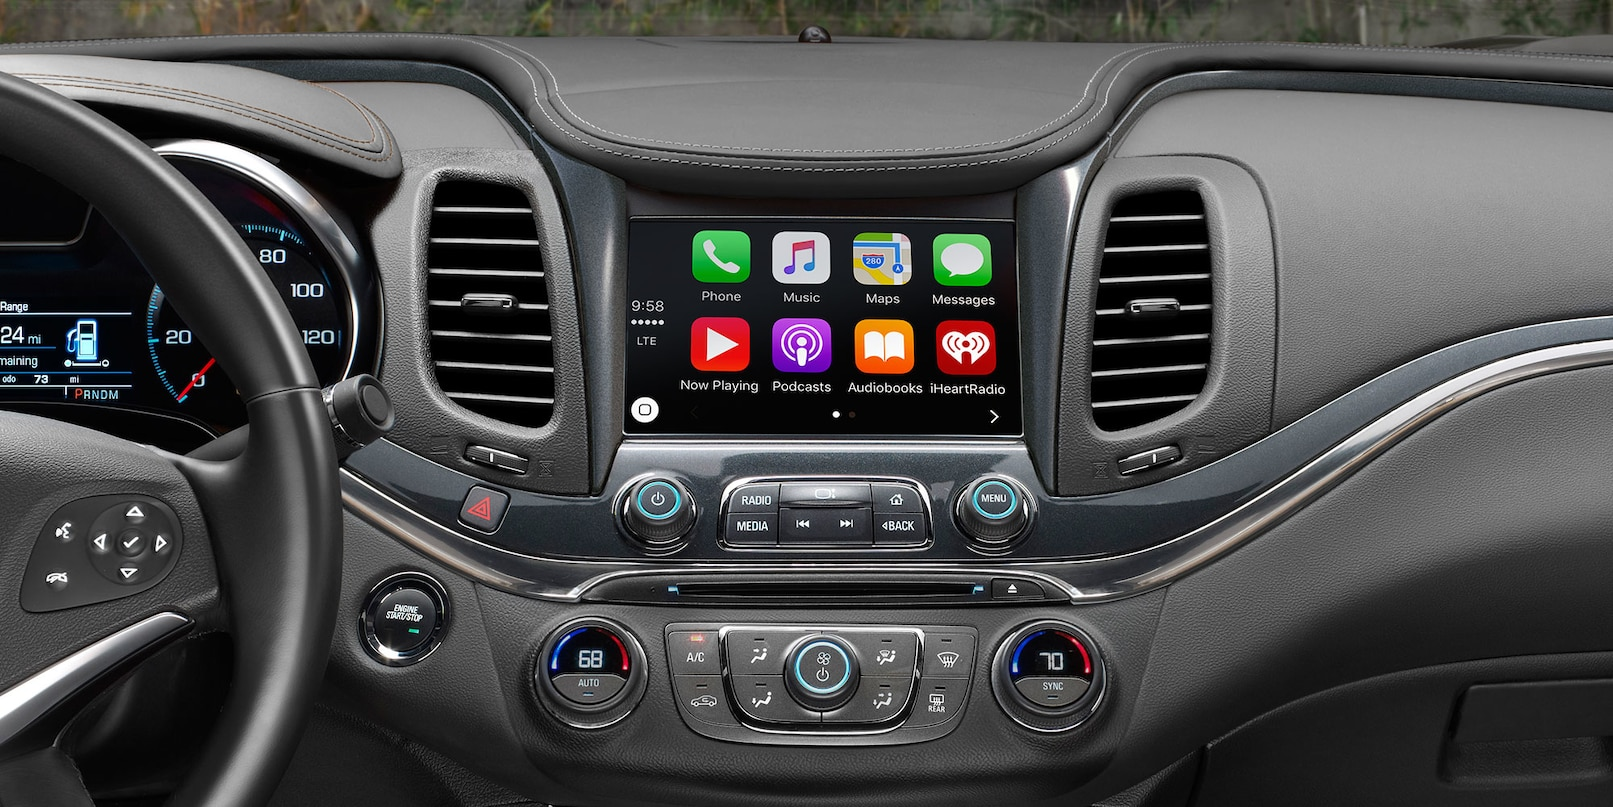 Apple CarPlay™ in the Chevy Impala